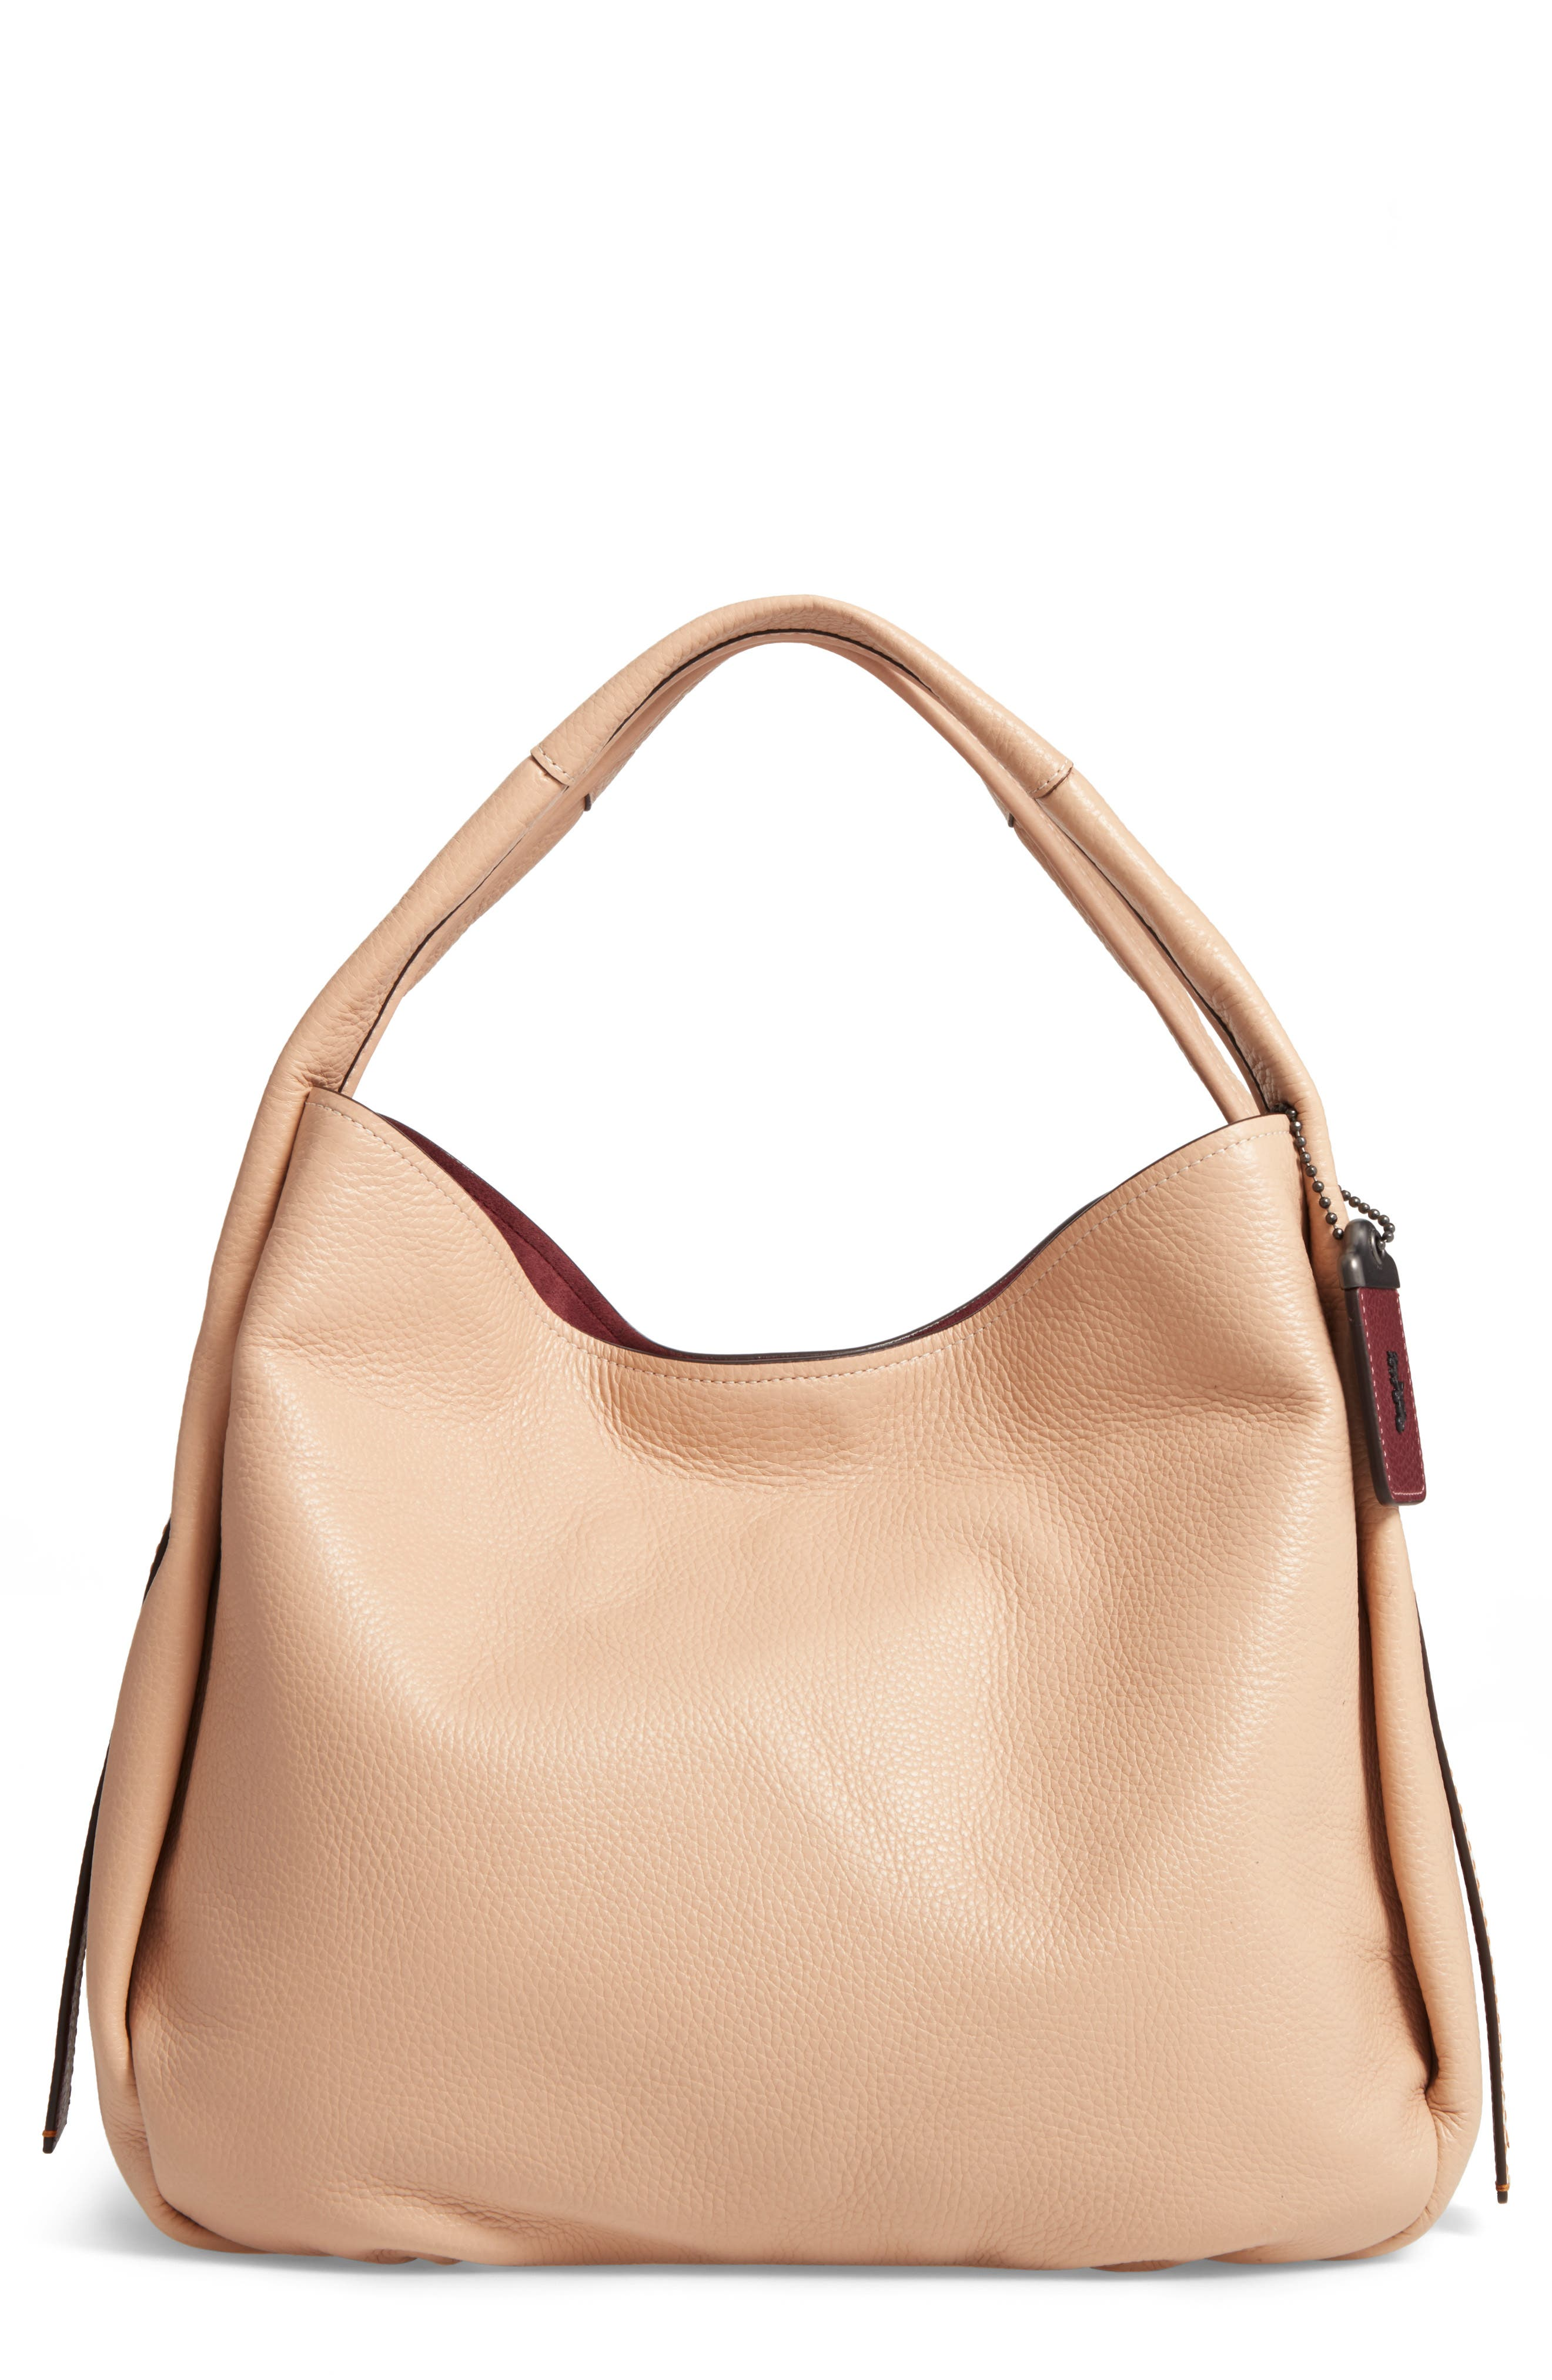 8dd934f6e1 best coach womens glovetanned coach nomad crossbody e9e34 52a22  best price  coach 1941 bandit leather hobo removable shoulder bag c5bea 33ce7